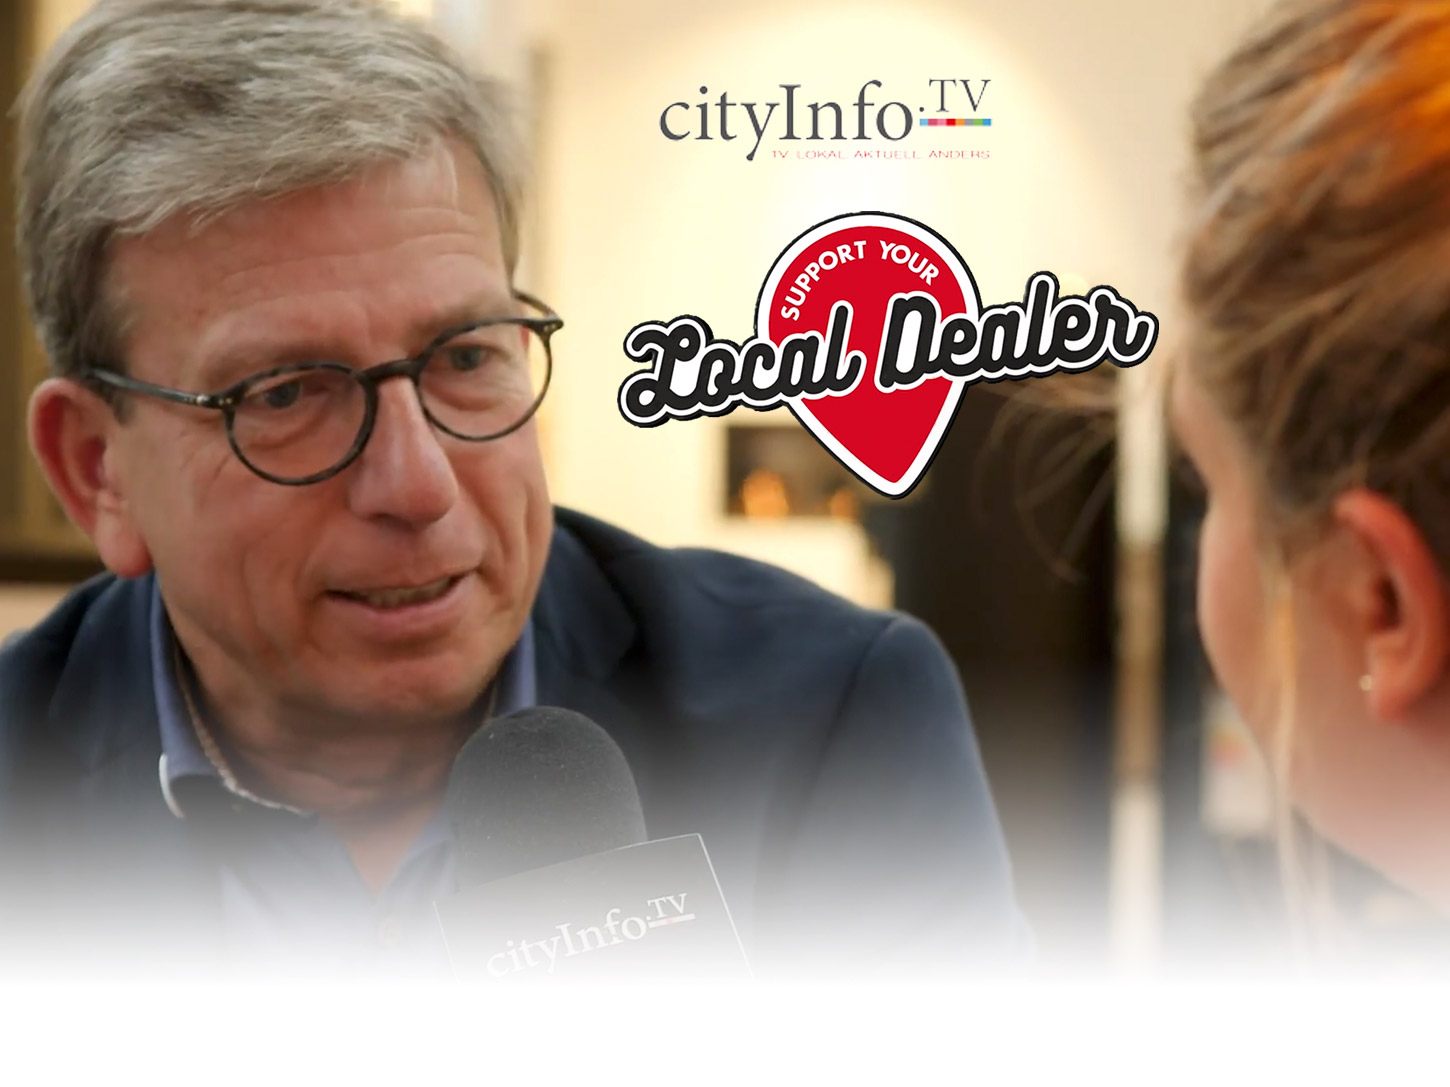 Studio DUIS bei Cityinfo.tv Support Your Local Dealer